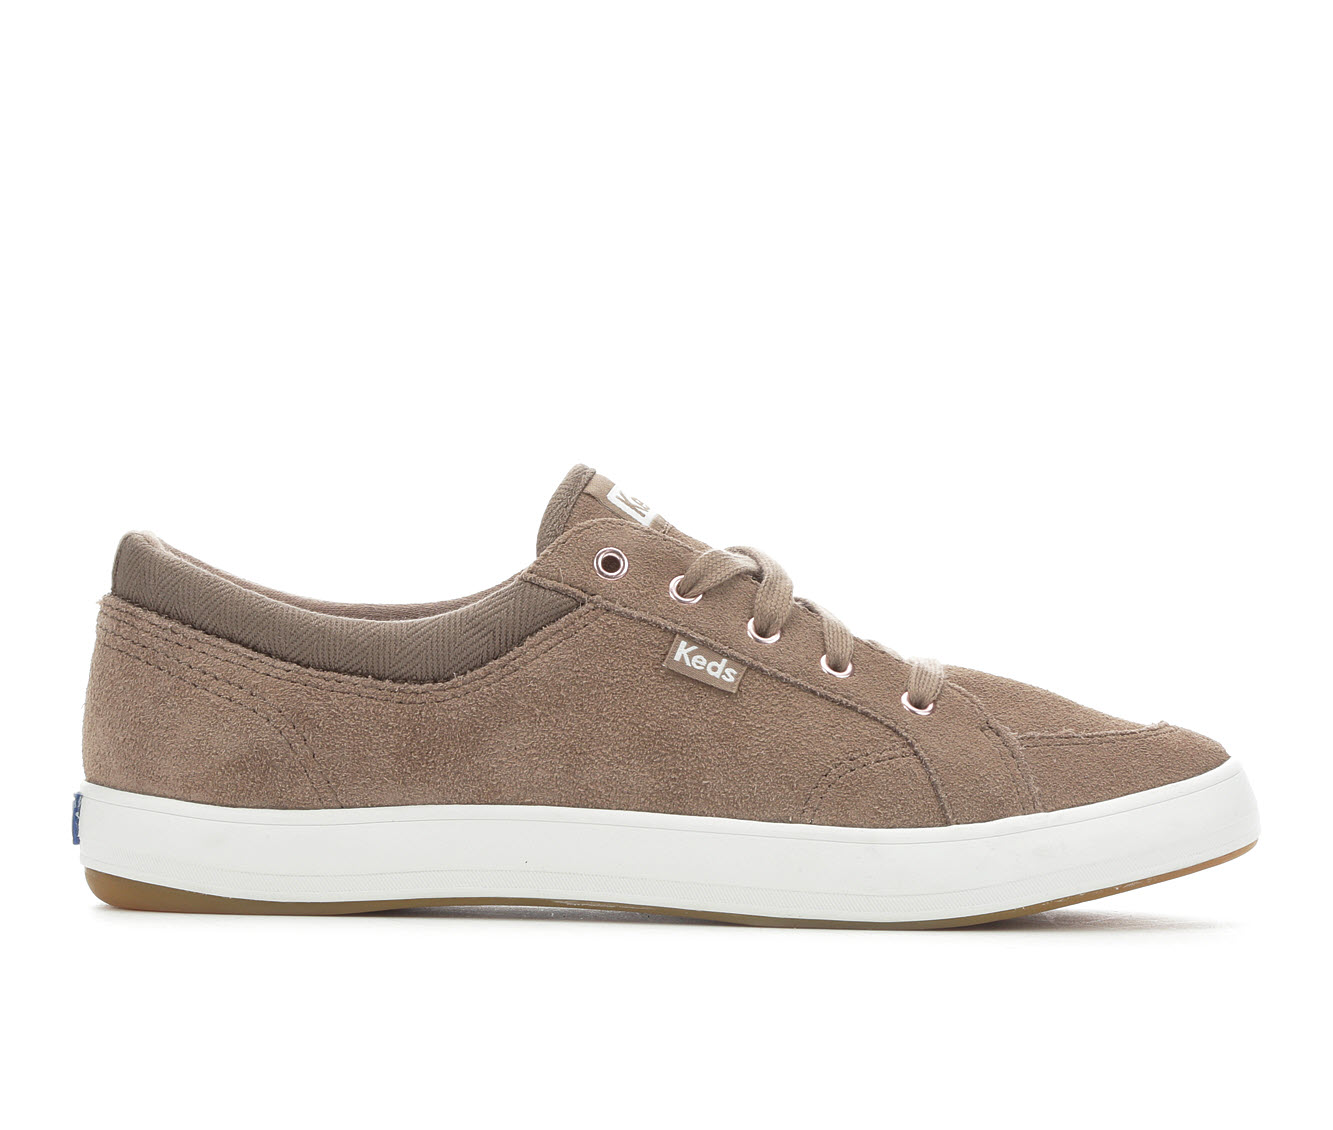 Keds Center Suede Women's Shoe (Brown Canvas)